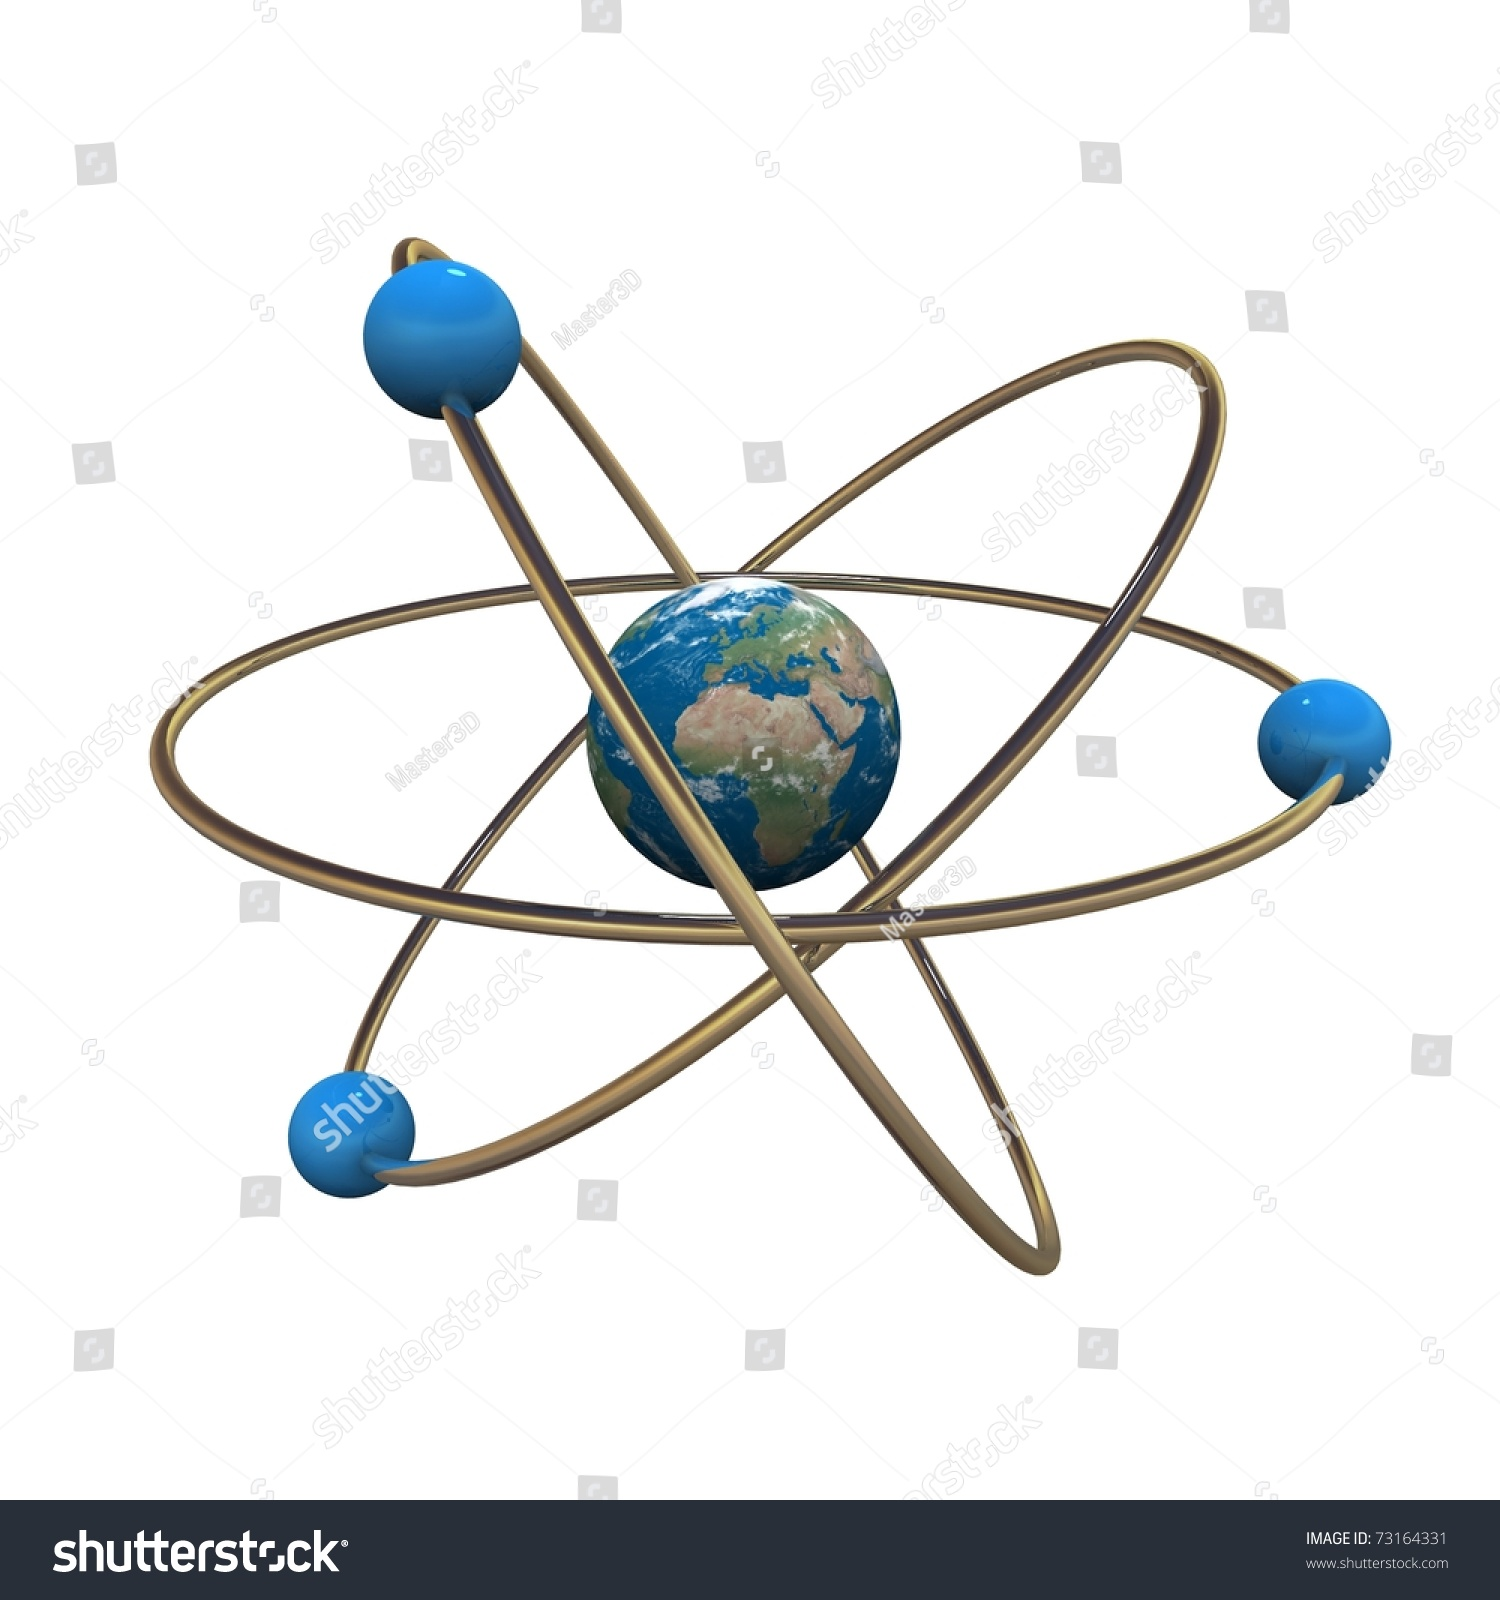 hight resolution of 3d atom model with earth in center